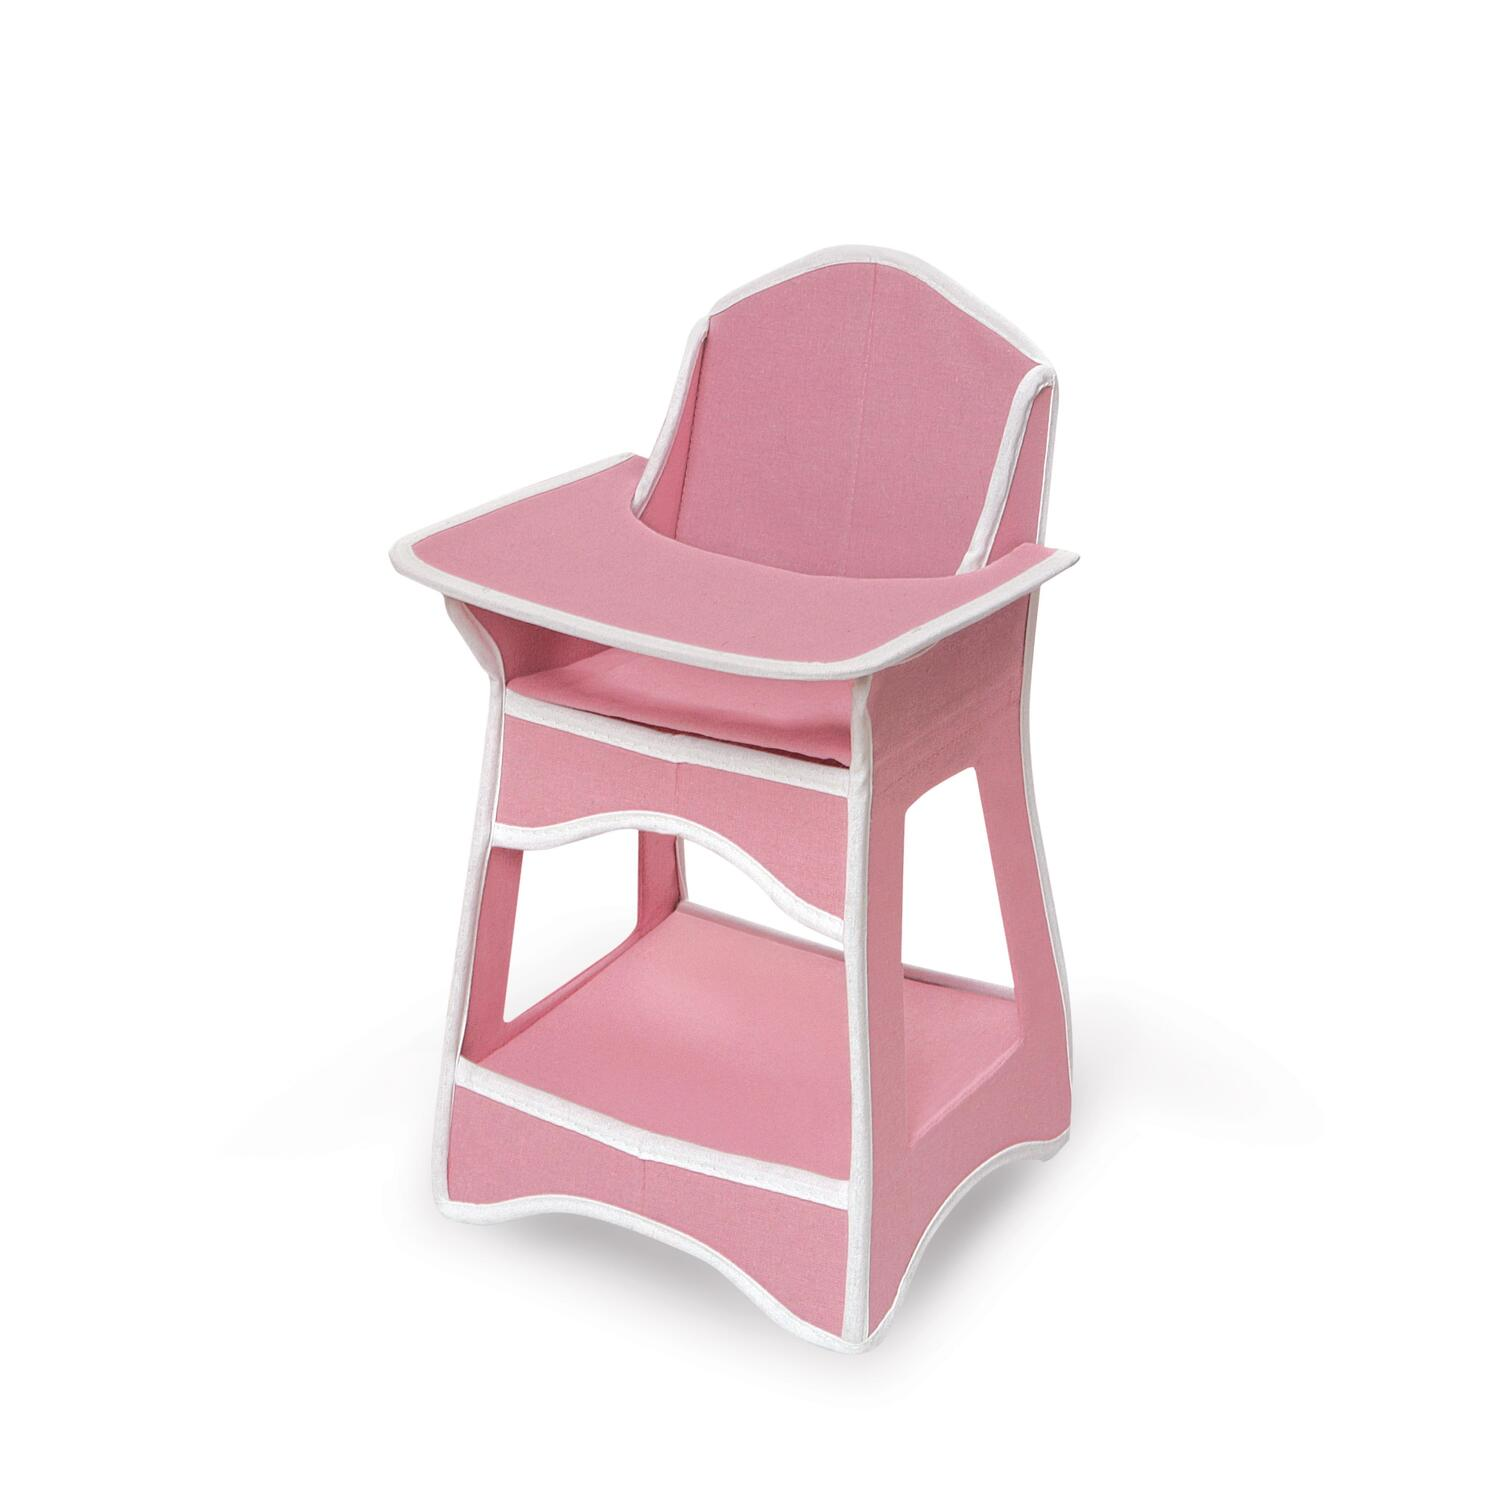 High Chair Toy Holder : Folding doll furniture set with storage crib high chair